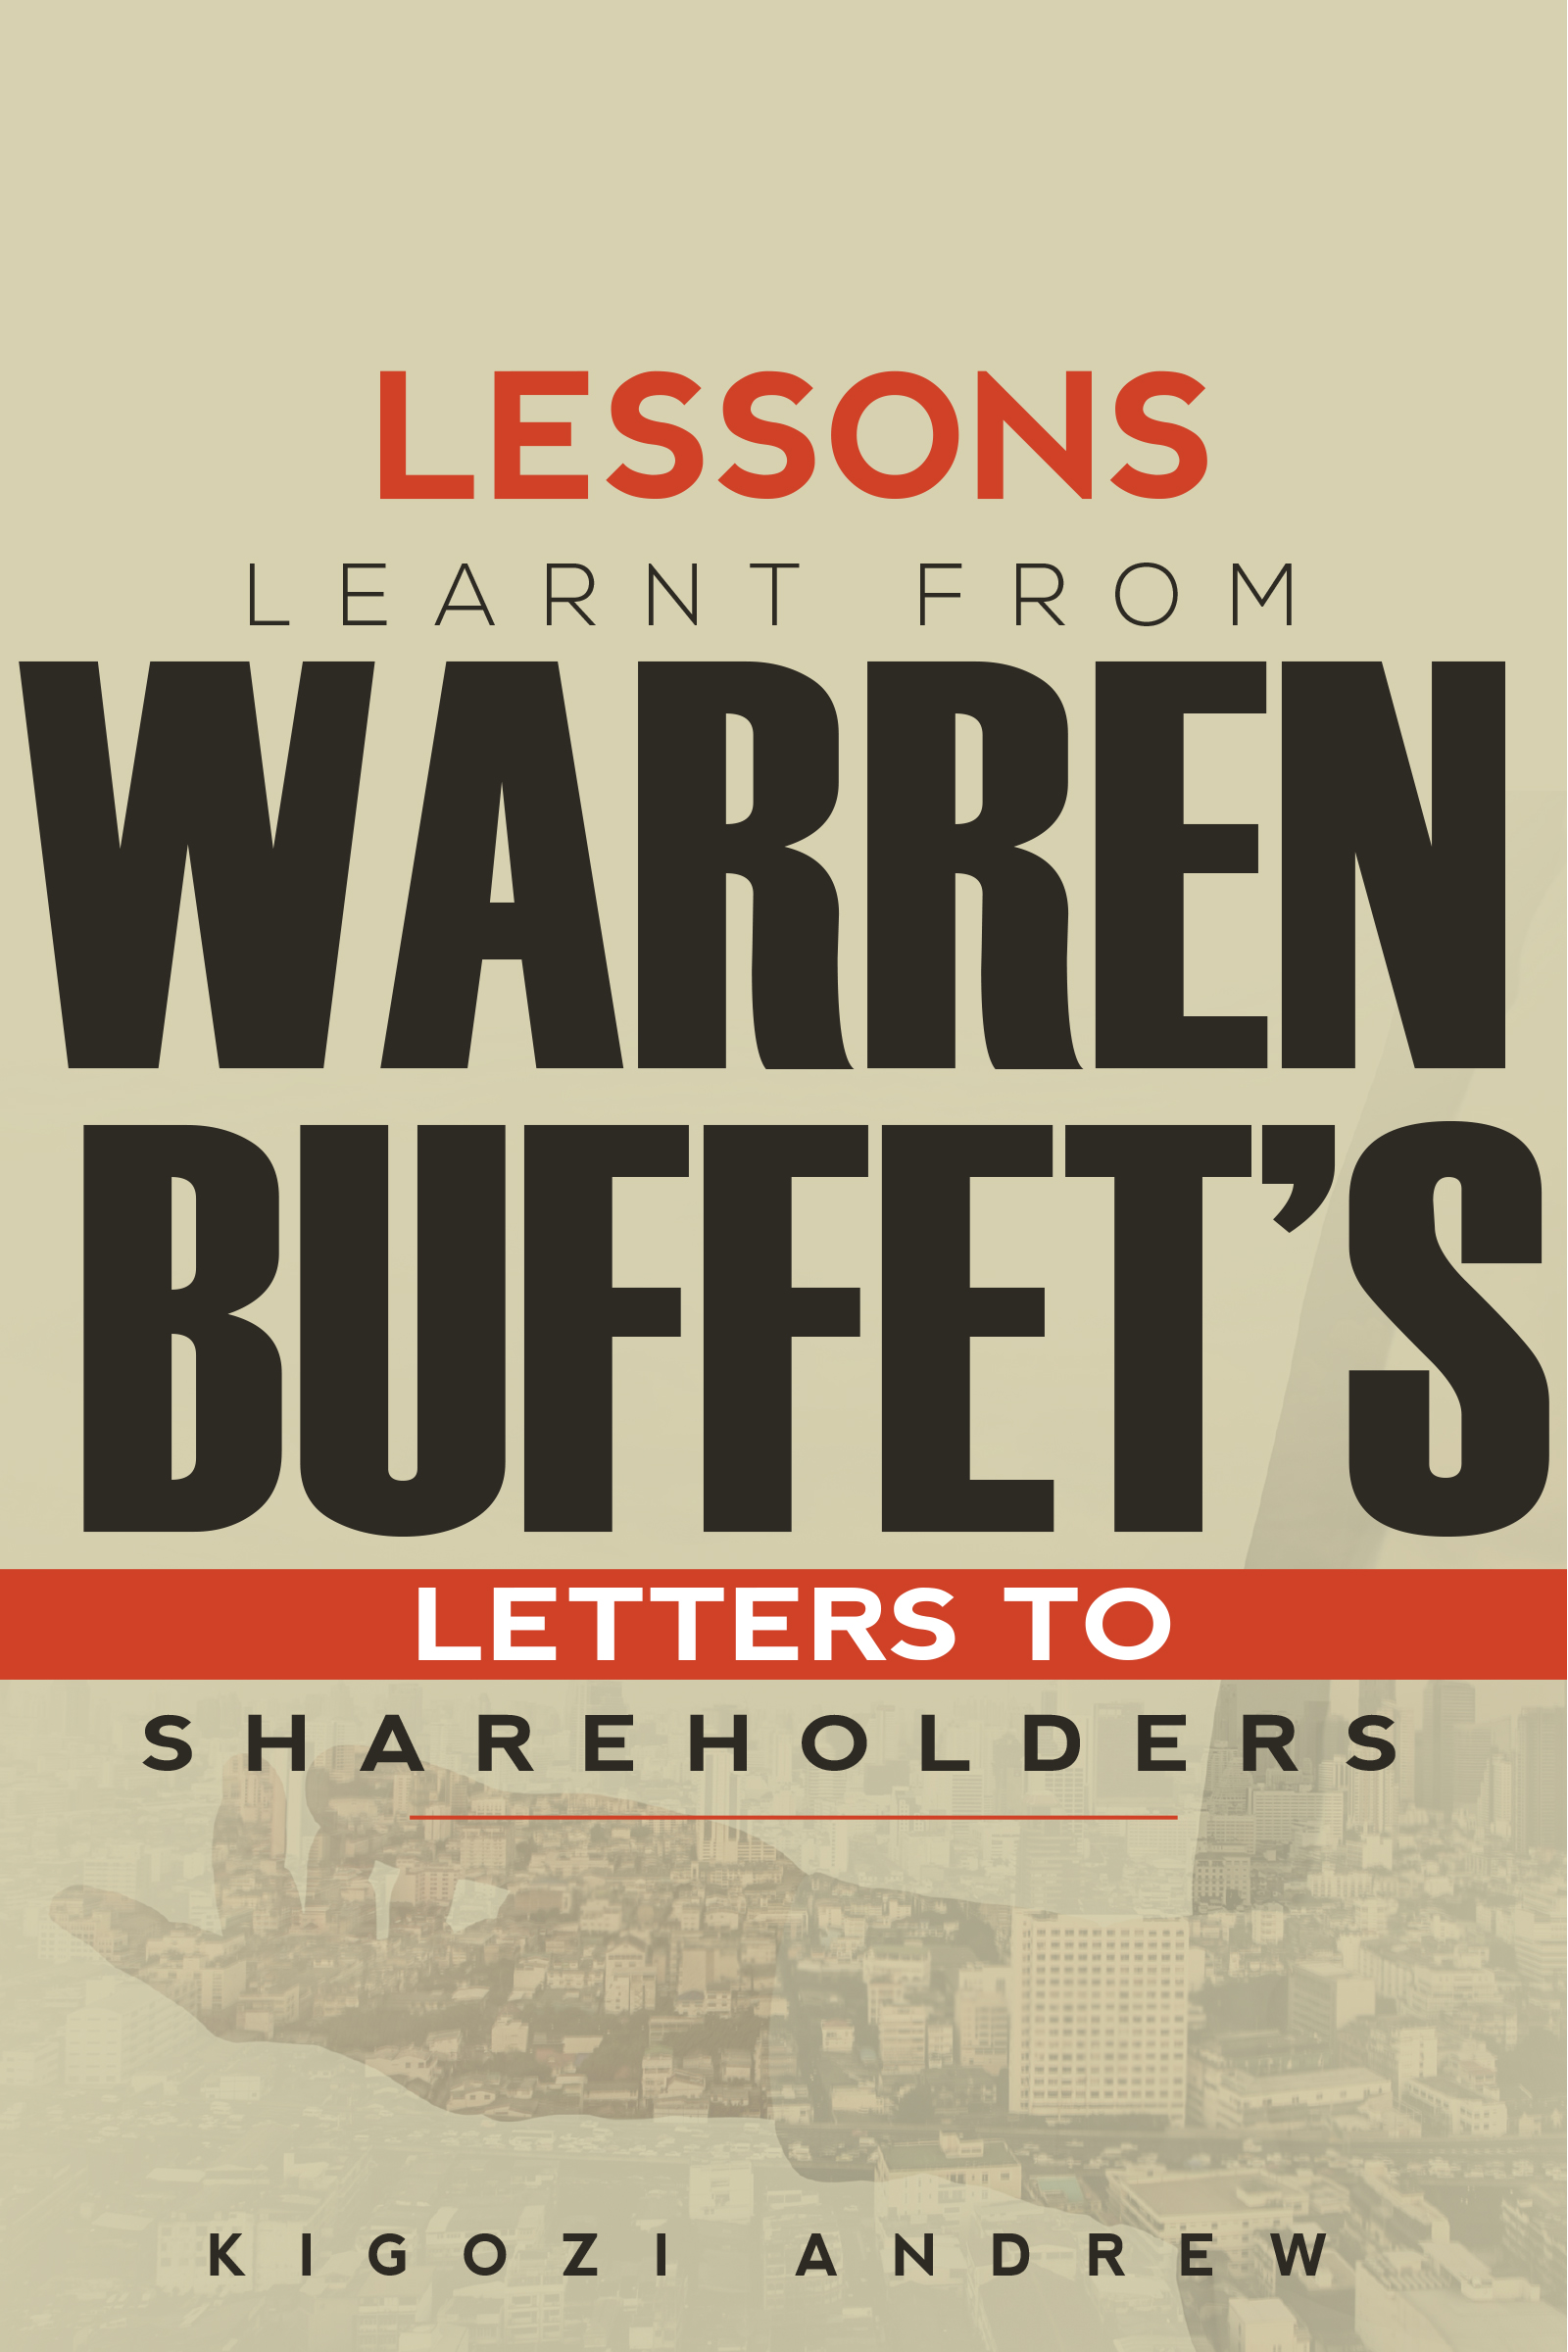 Lessons learnt from warren buffet's letters to shareholders